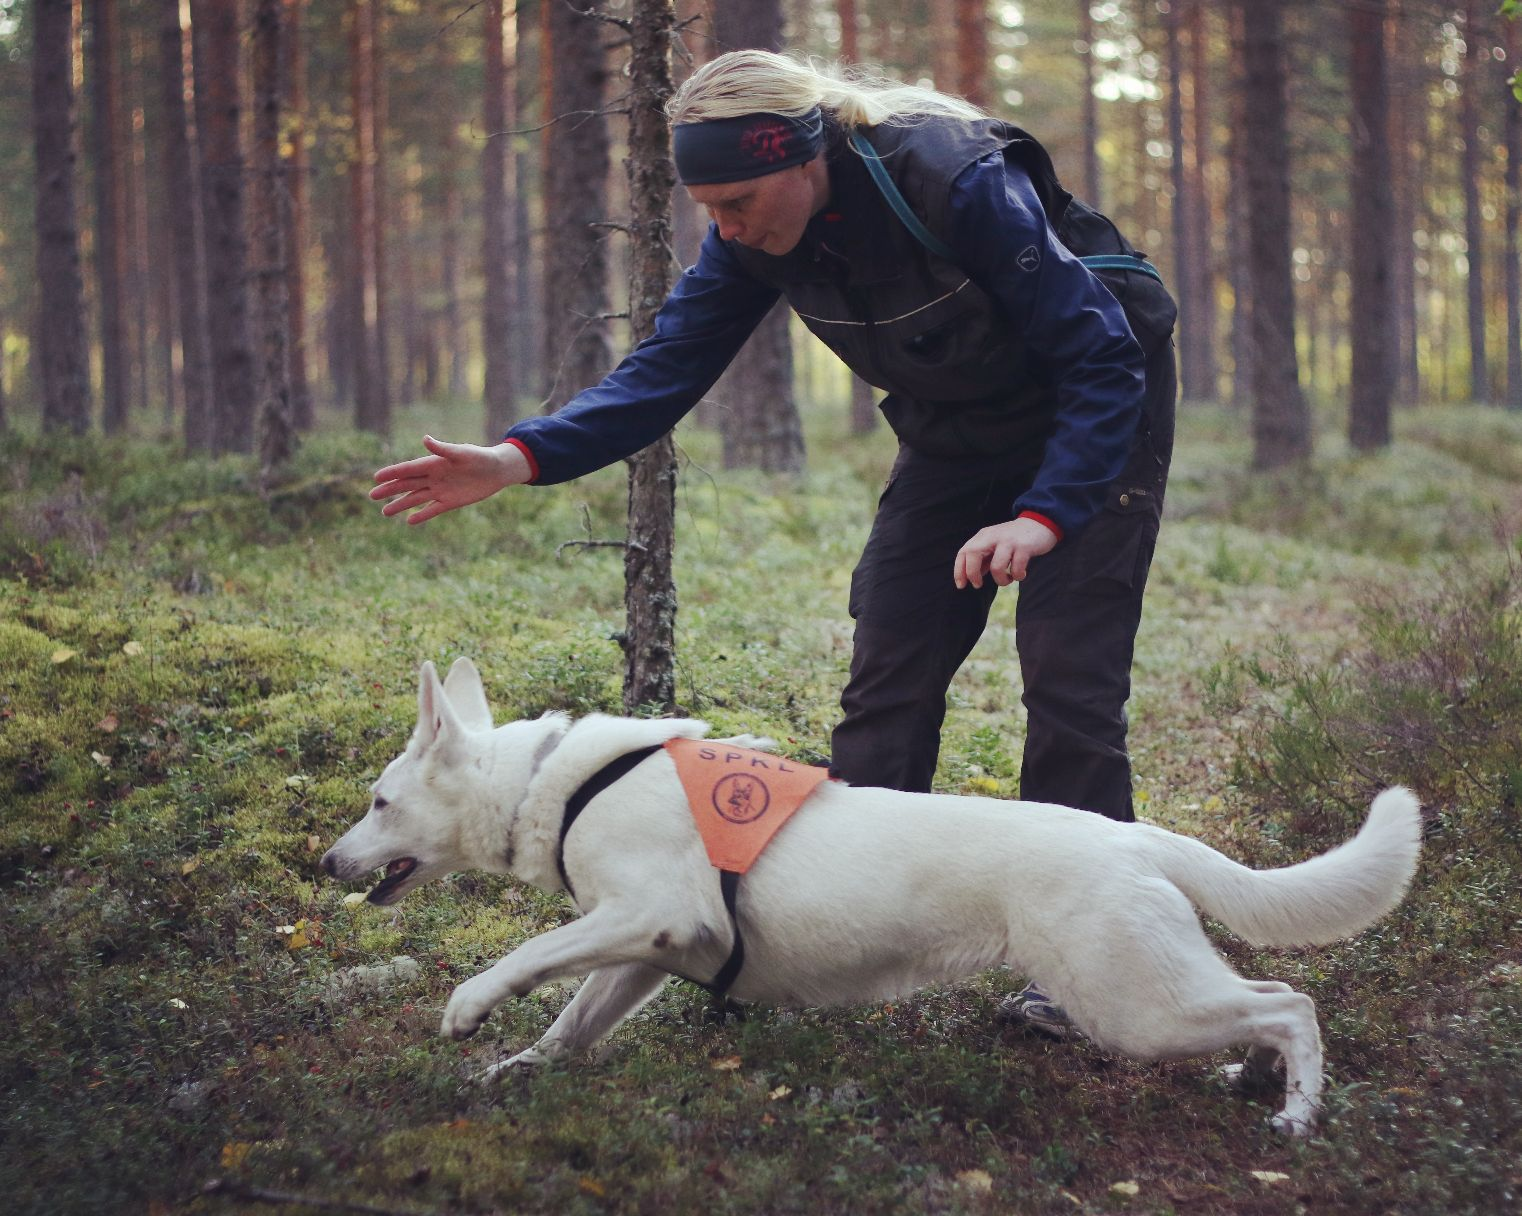 Born to Win White Oodi Search & Rescue Regional Championship Silver in Finland  1